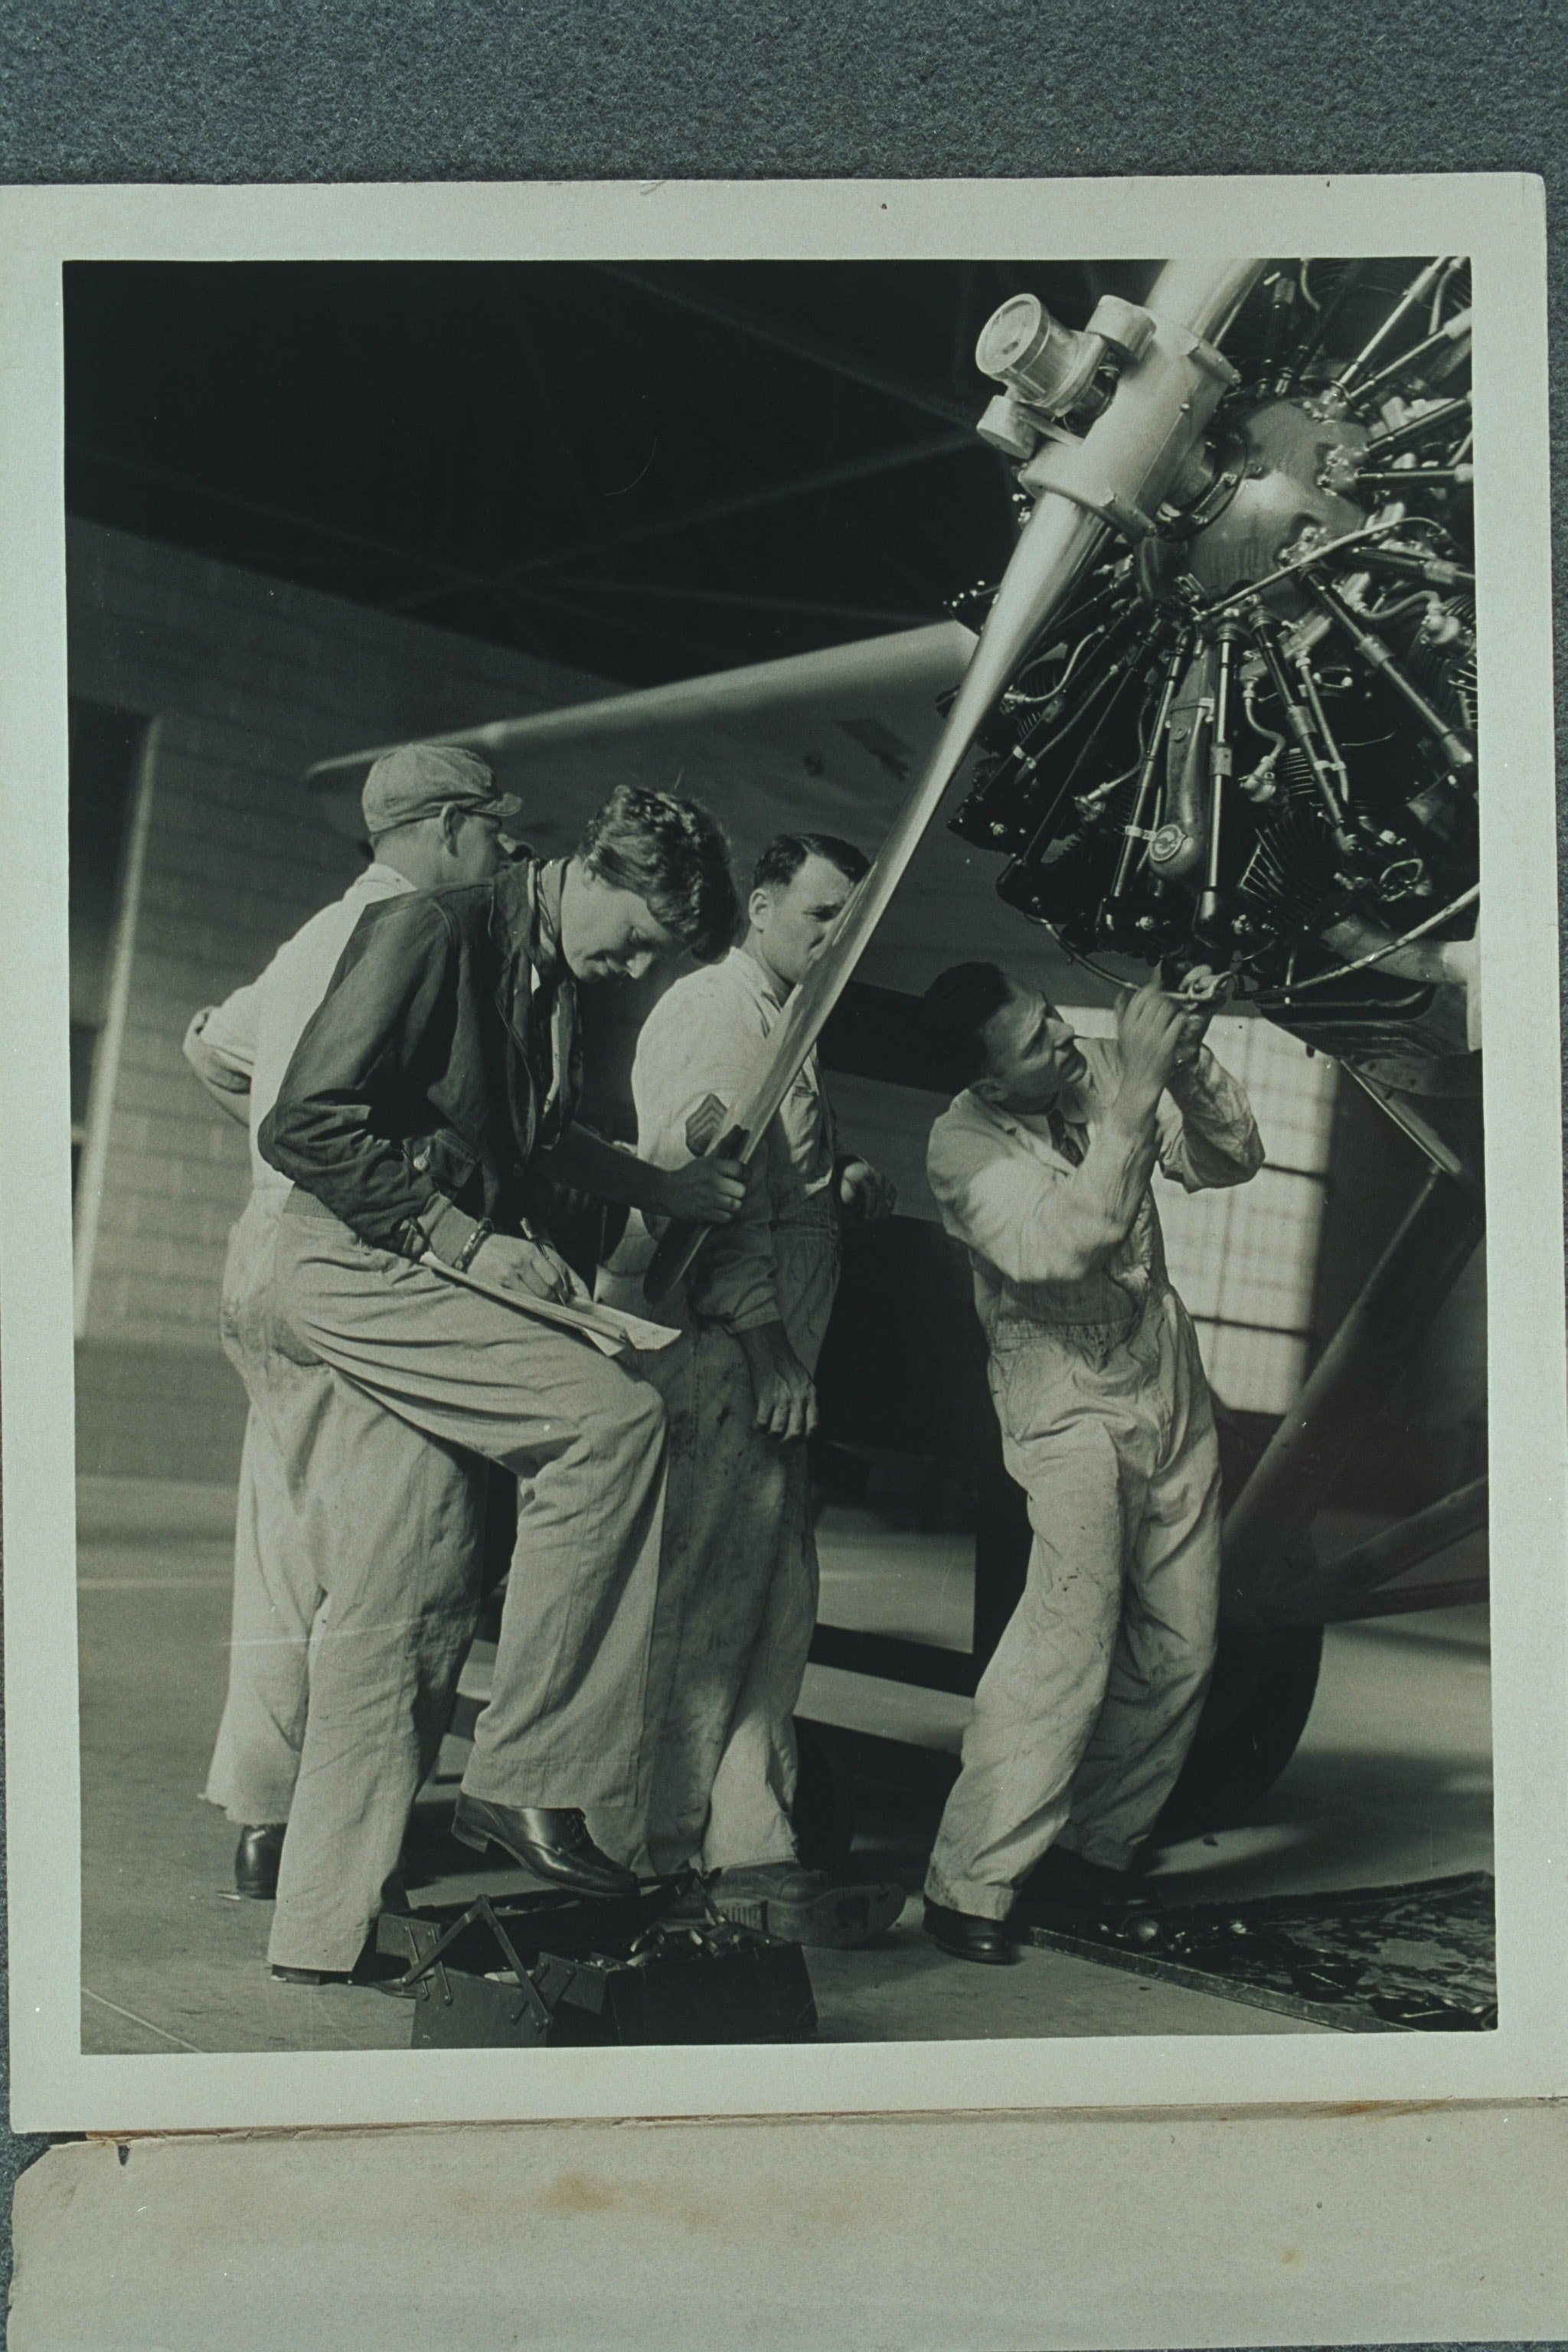 Amelia Earhart and three men checking the propellor of her airplane